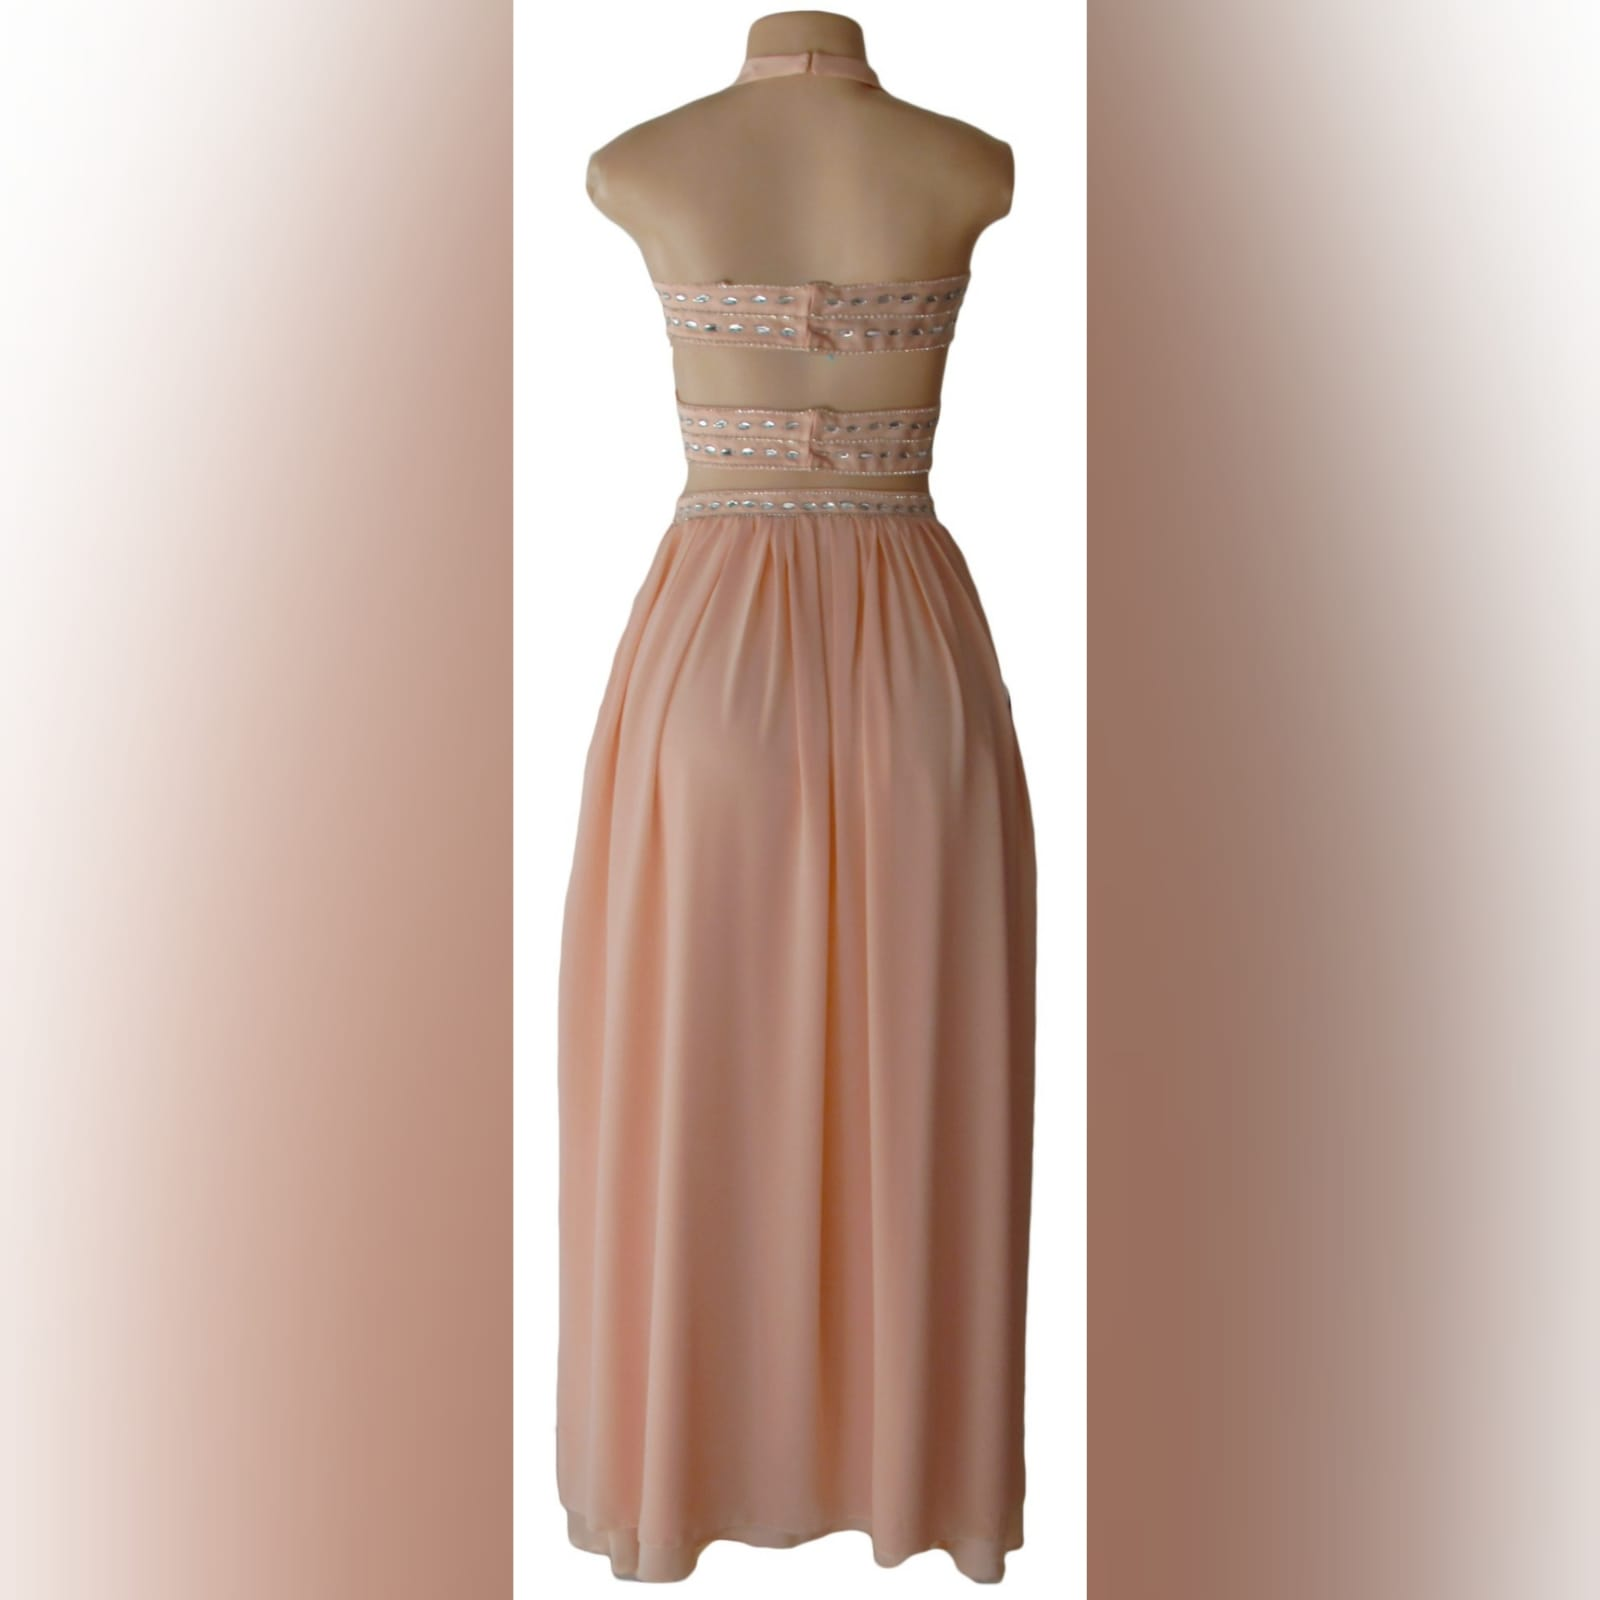 Pink nude 2 piece prom dress 3 pink nude 2 piece prom dress with crop top open on the sides, halter neck creating a v neckline with a naked back detailed with straps. Top detailed with patterned silver beading. Flowy long skirt with a slit and waistband detailed with silver beads.